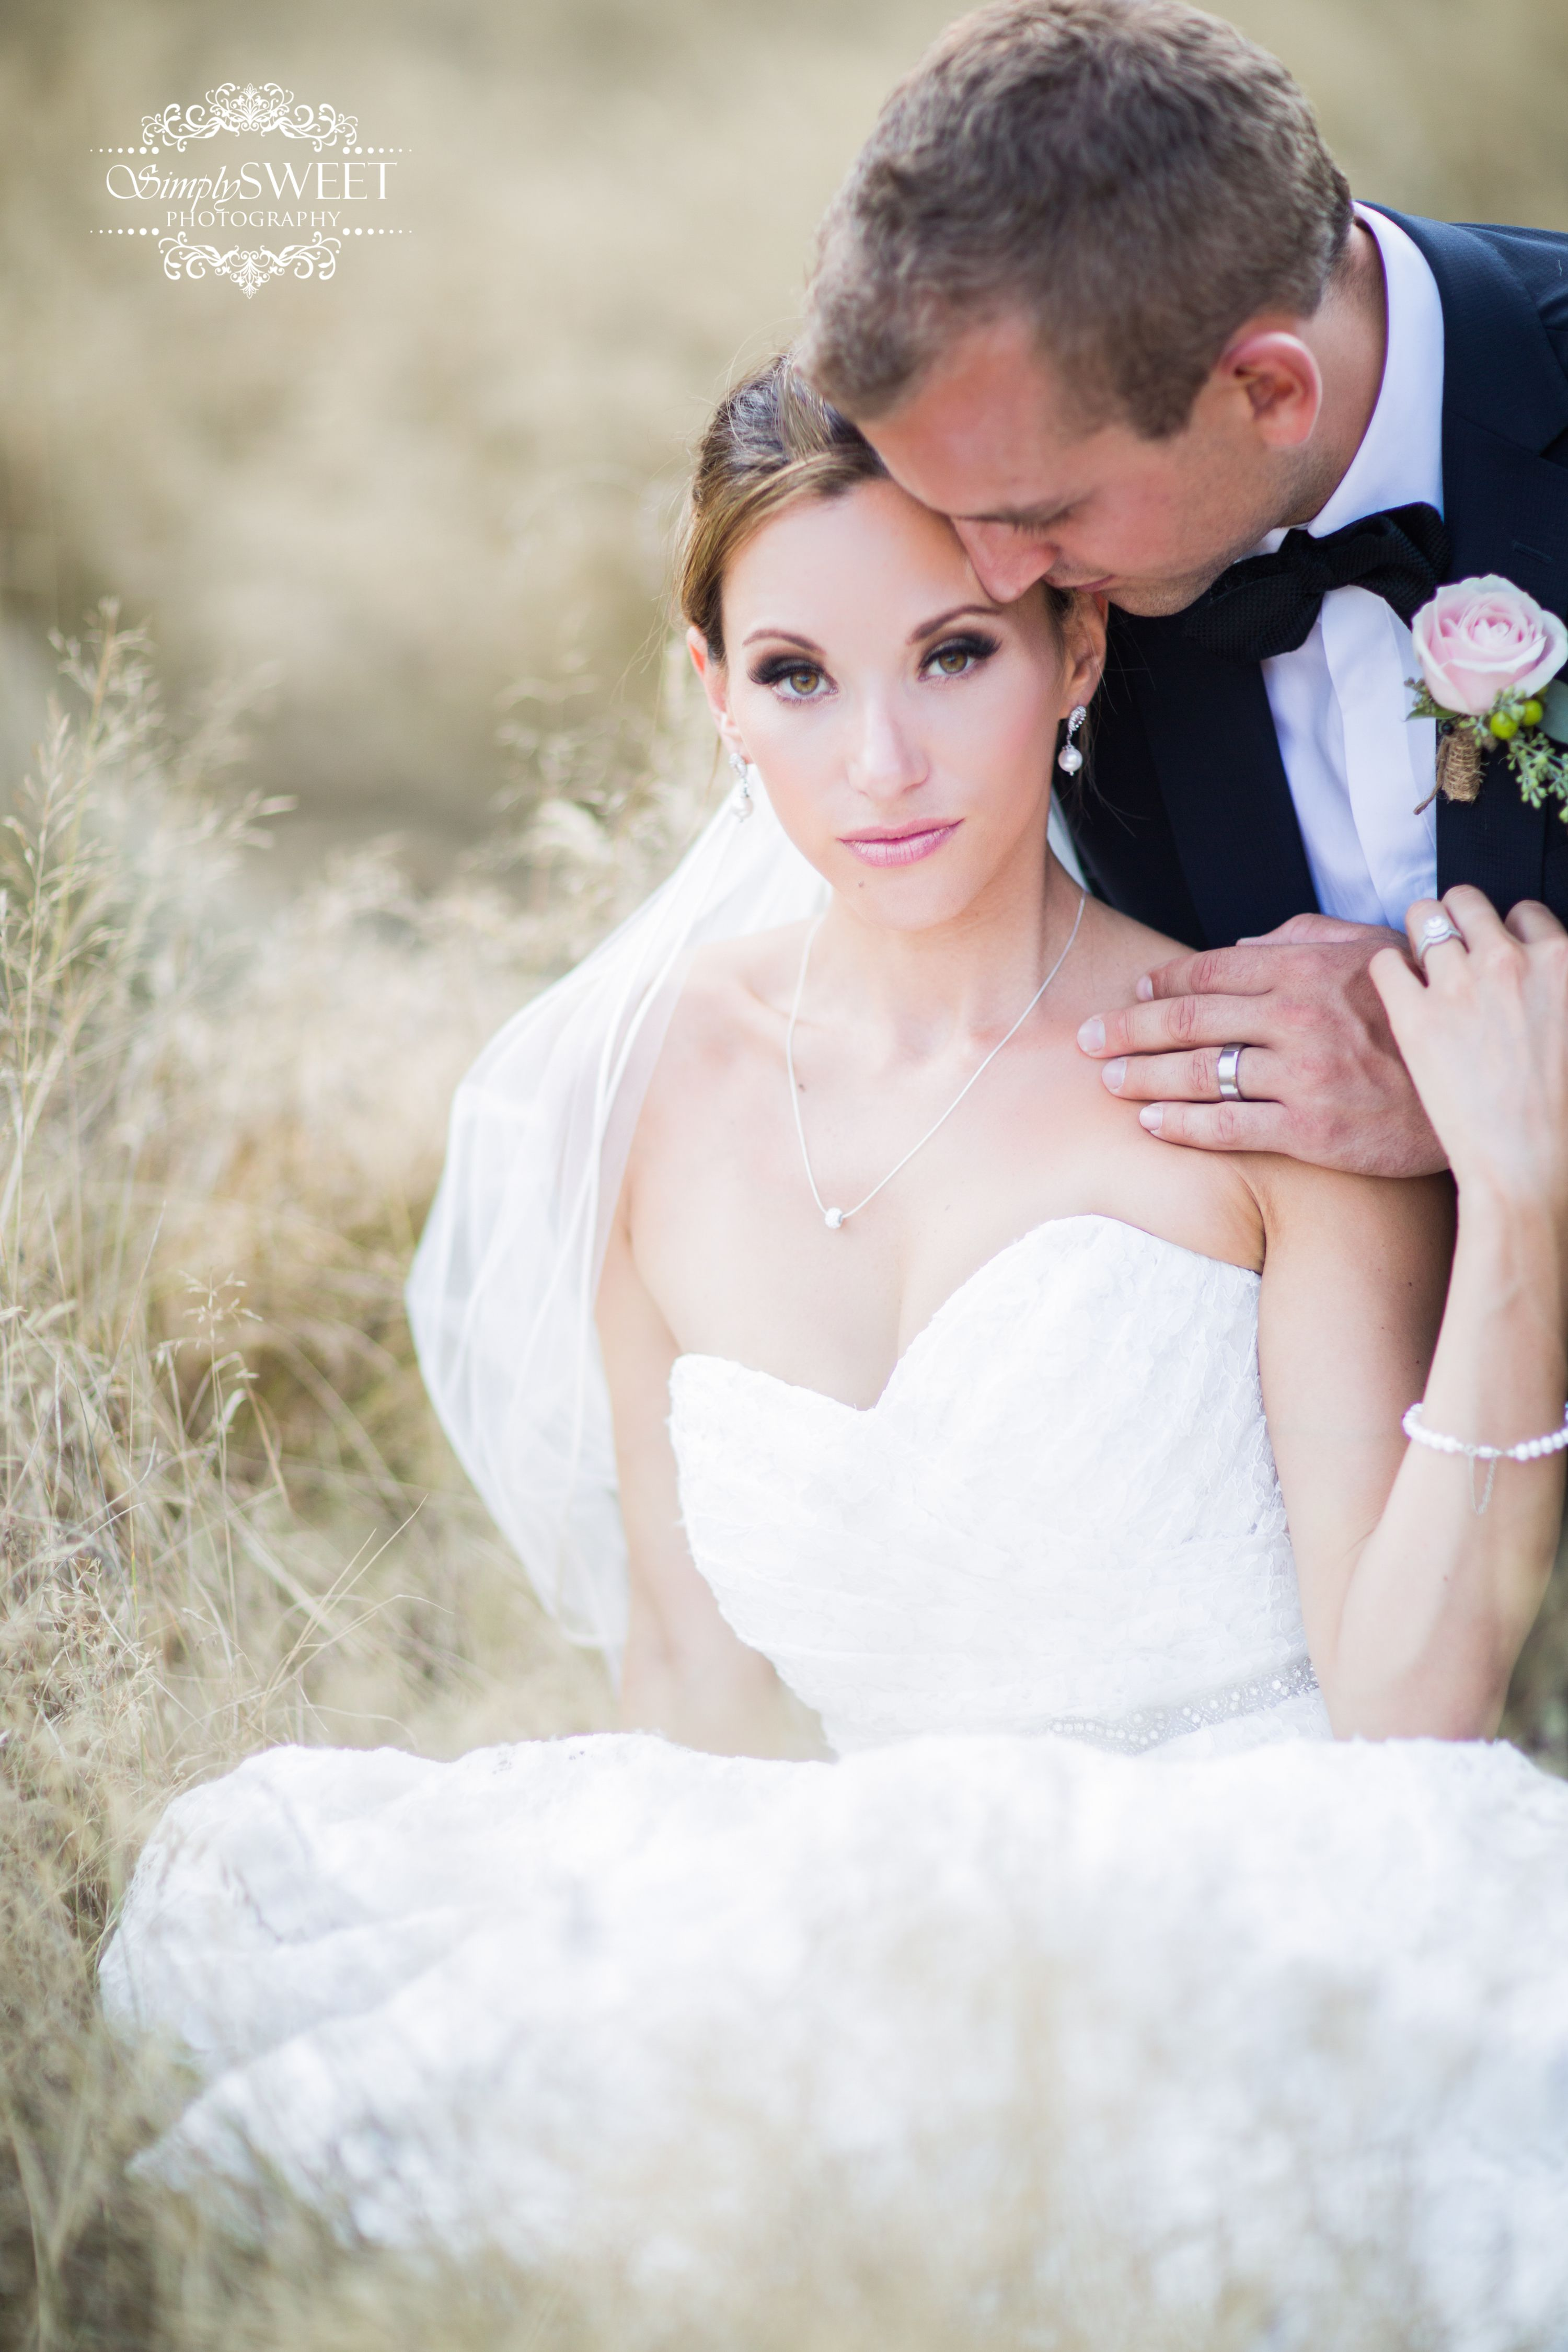 2014 winner from vancouver island wedding awards for best